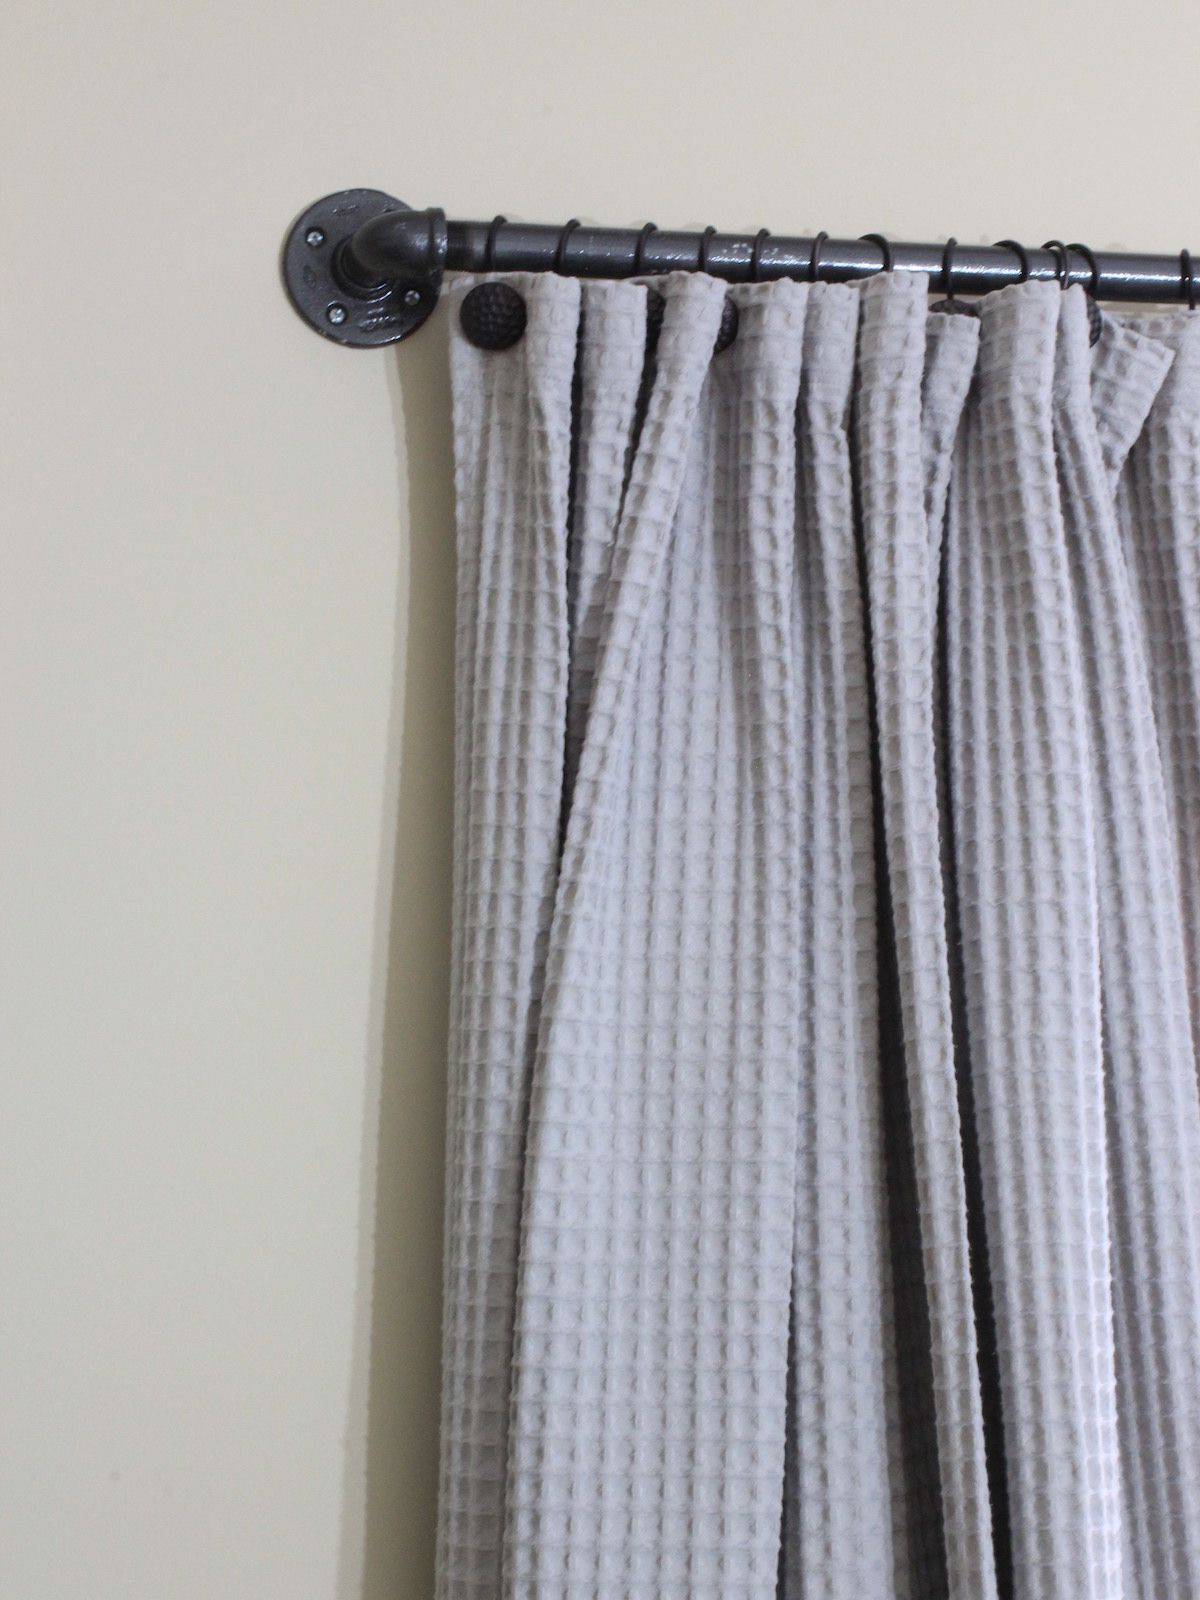 Diy Automatic Curtains 6 Ways To Make Your Own Curtain Rods